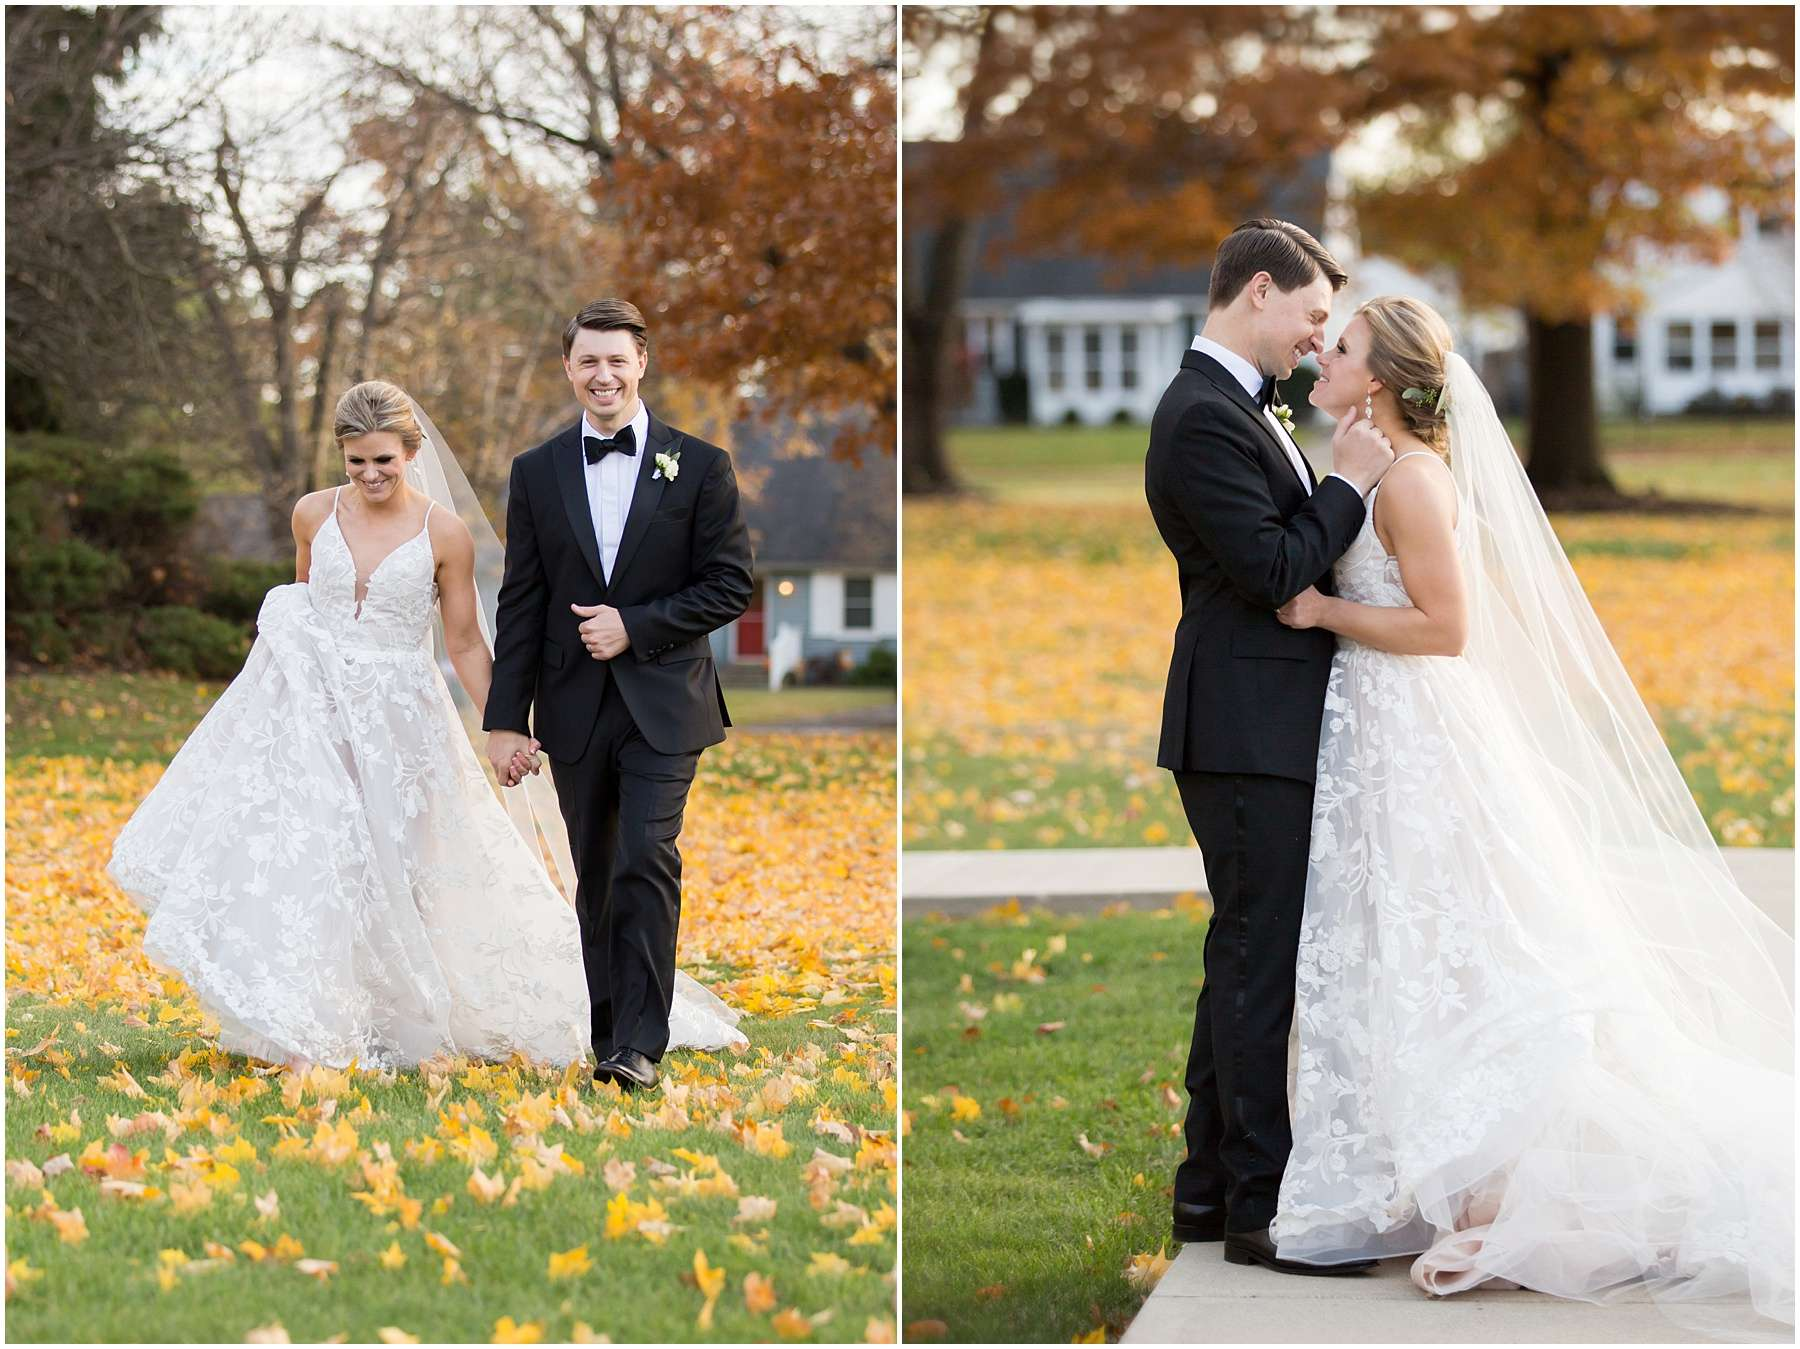 Wedding at the Ohio Statehouse | Columbus Ohio Weddings 136